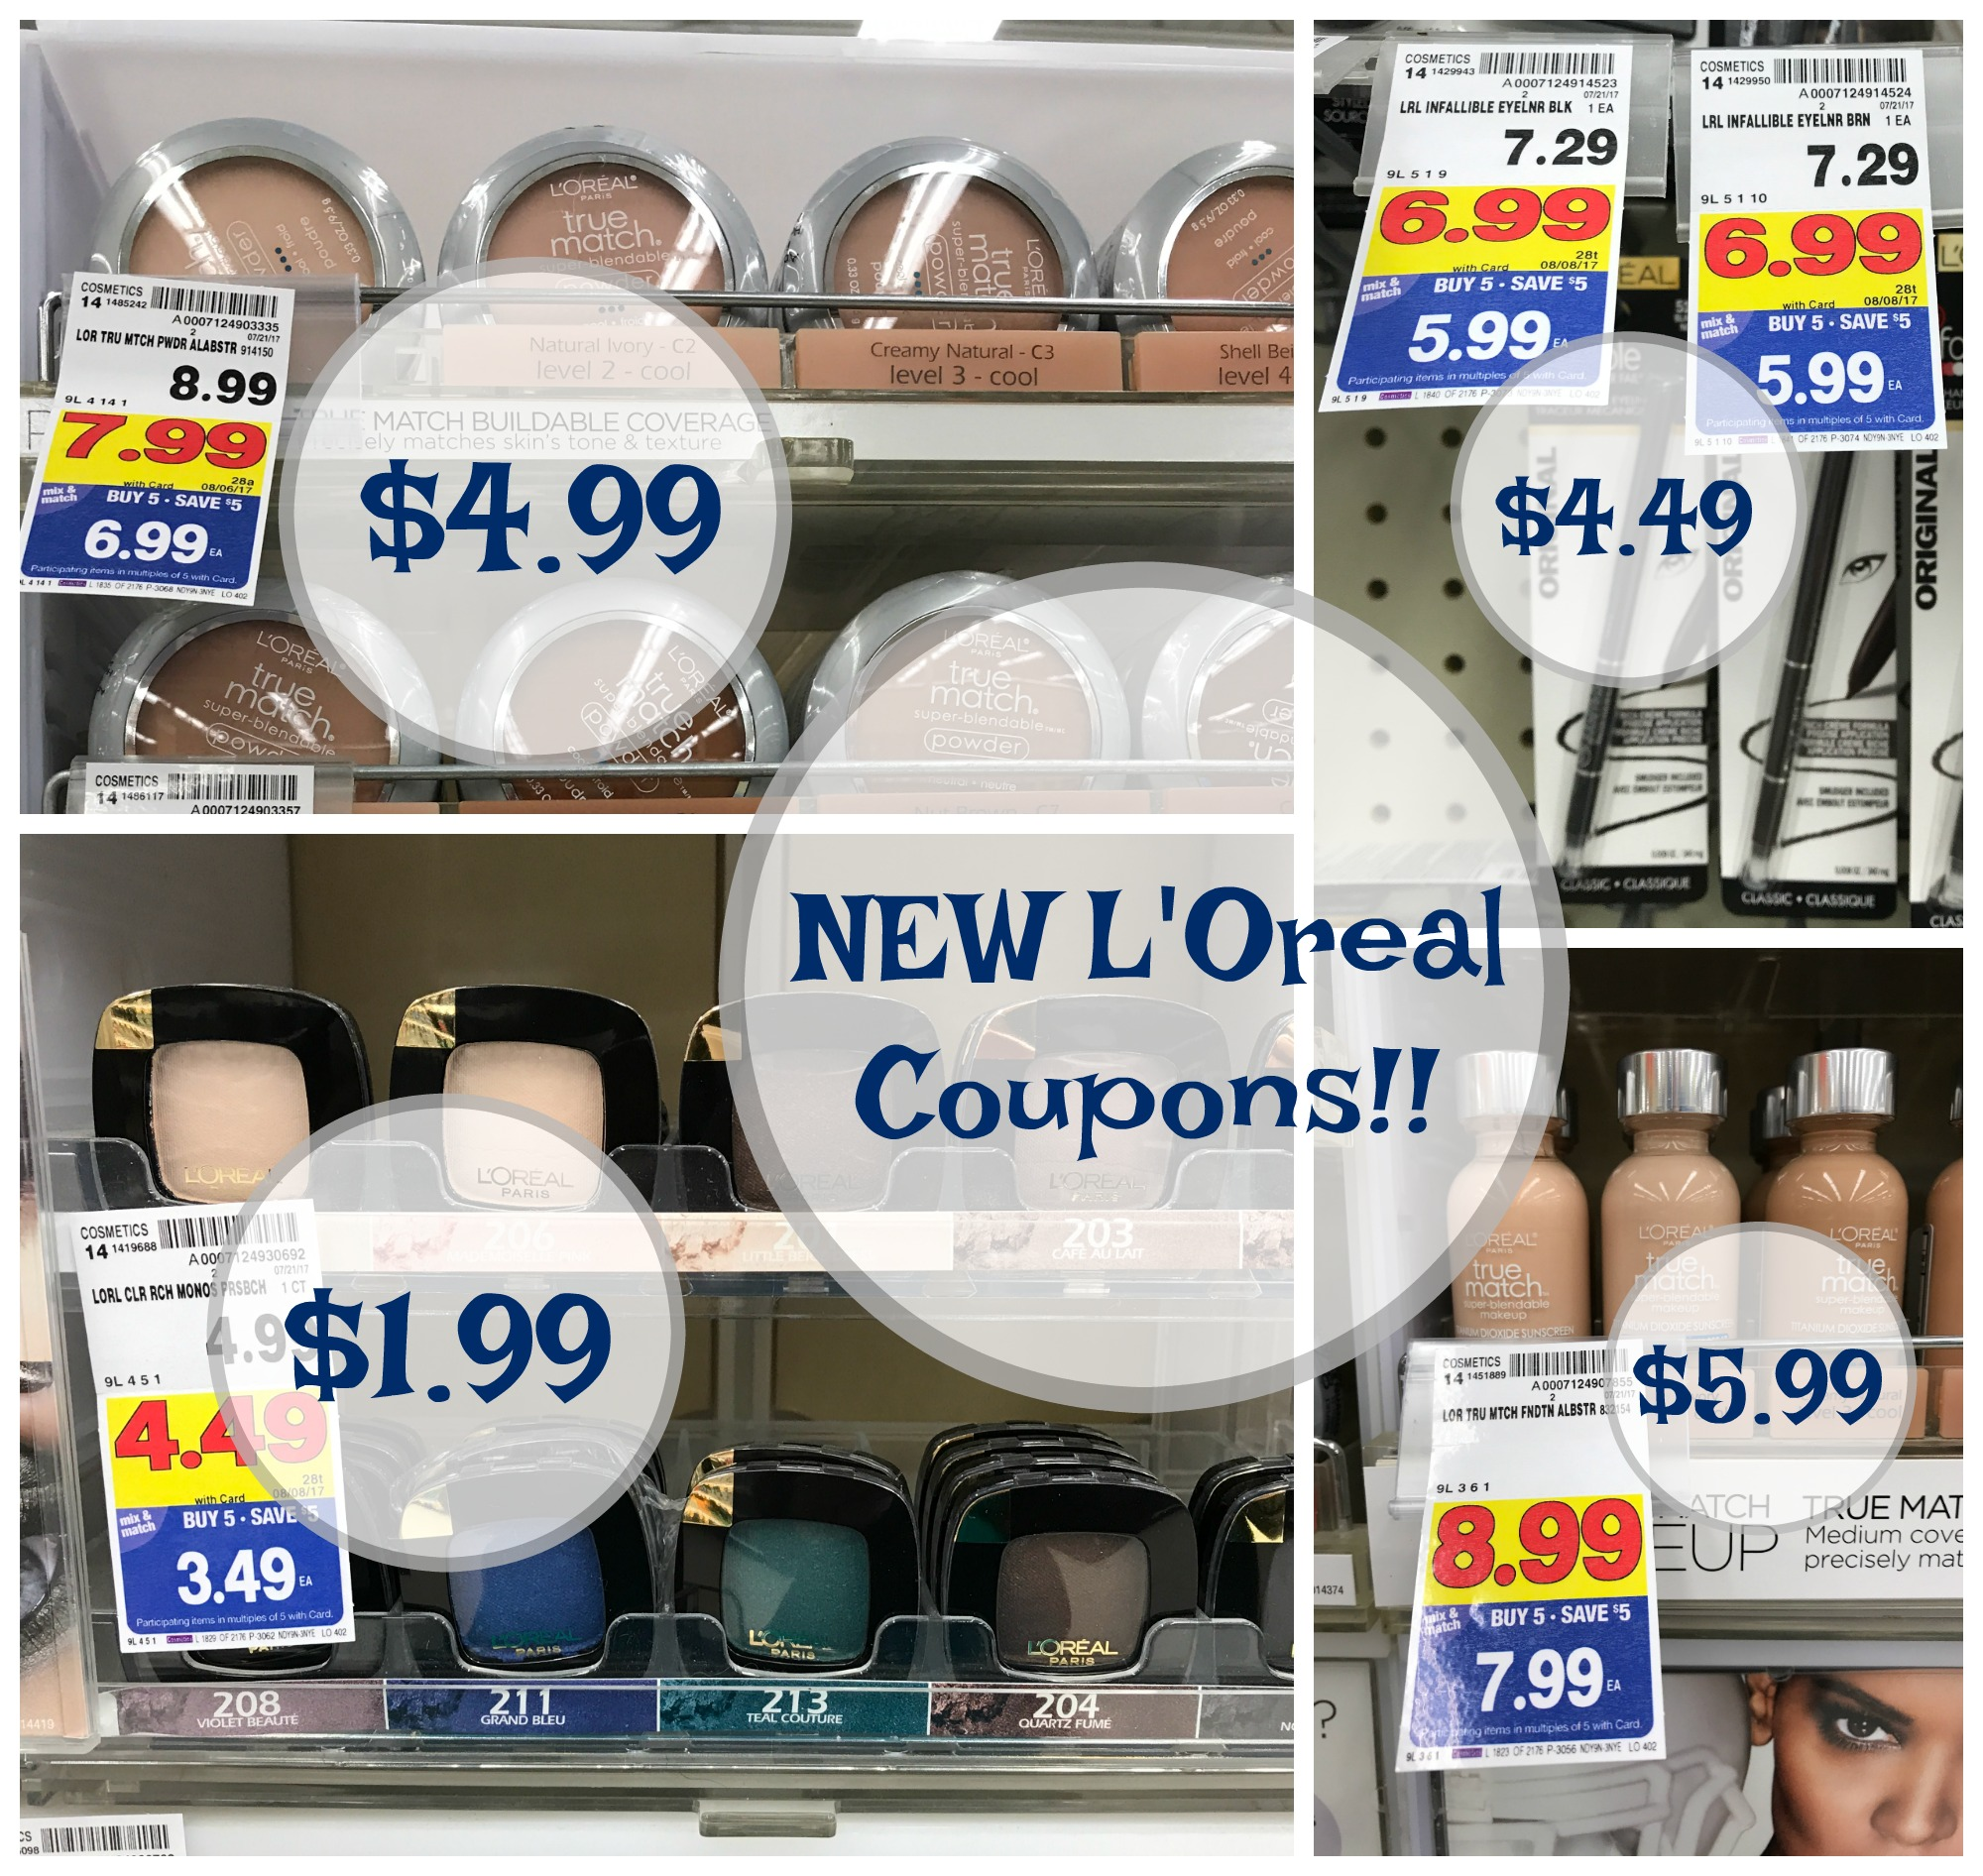 NEW L'Oreal Coupons = GREAT Cosmetics Deals at Kroger!! - Kroger Krazy